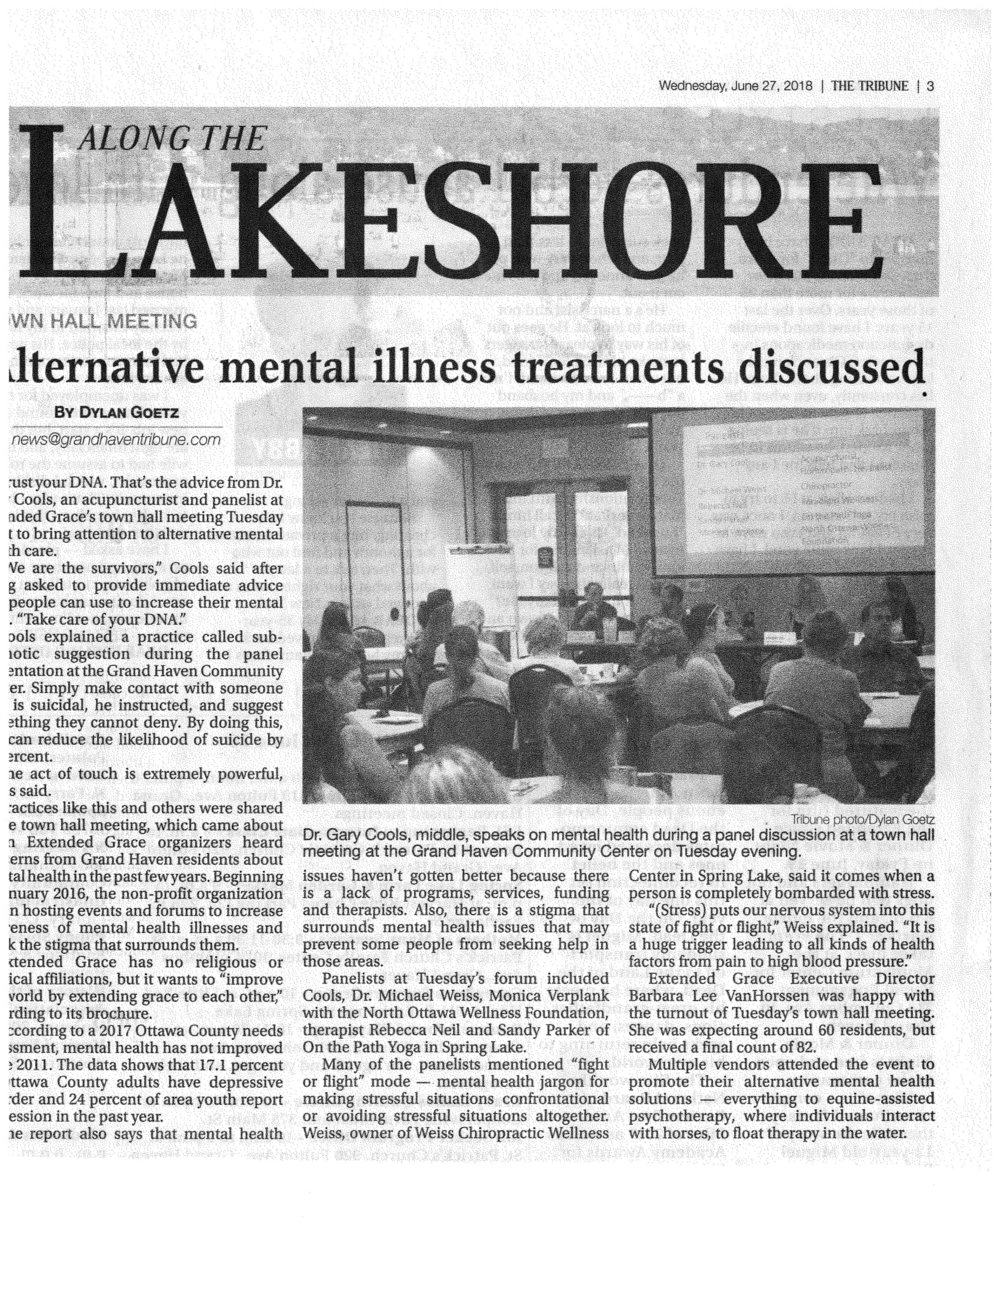 Forum to Focus on Alternative Treatments